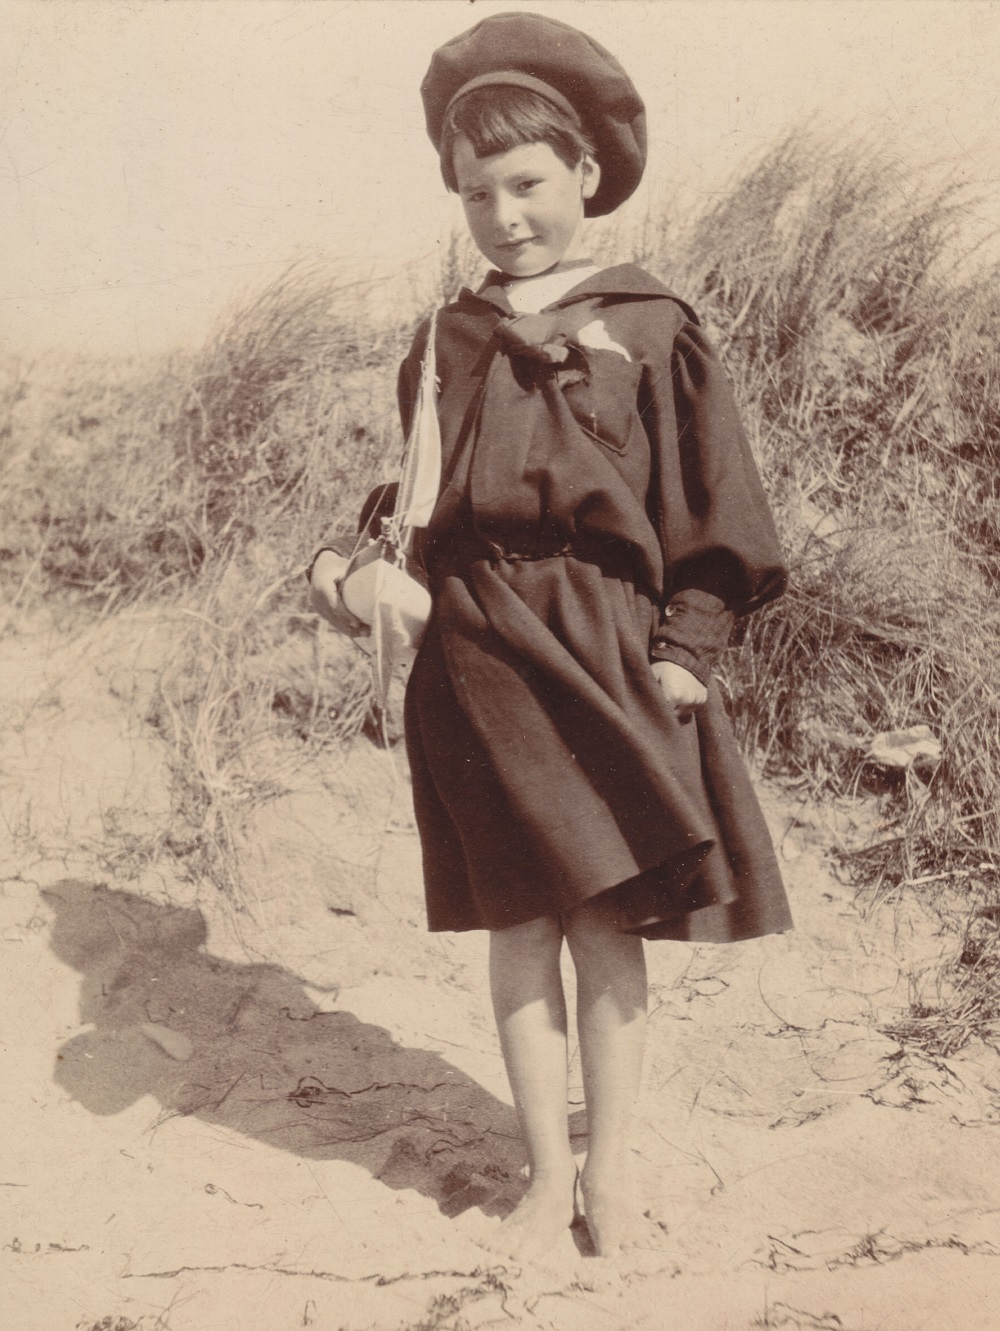 Evelyn Nettlefold on holiday, News from the Archives, Digging for Dirt, Winterbourne House and Garden